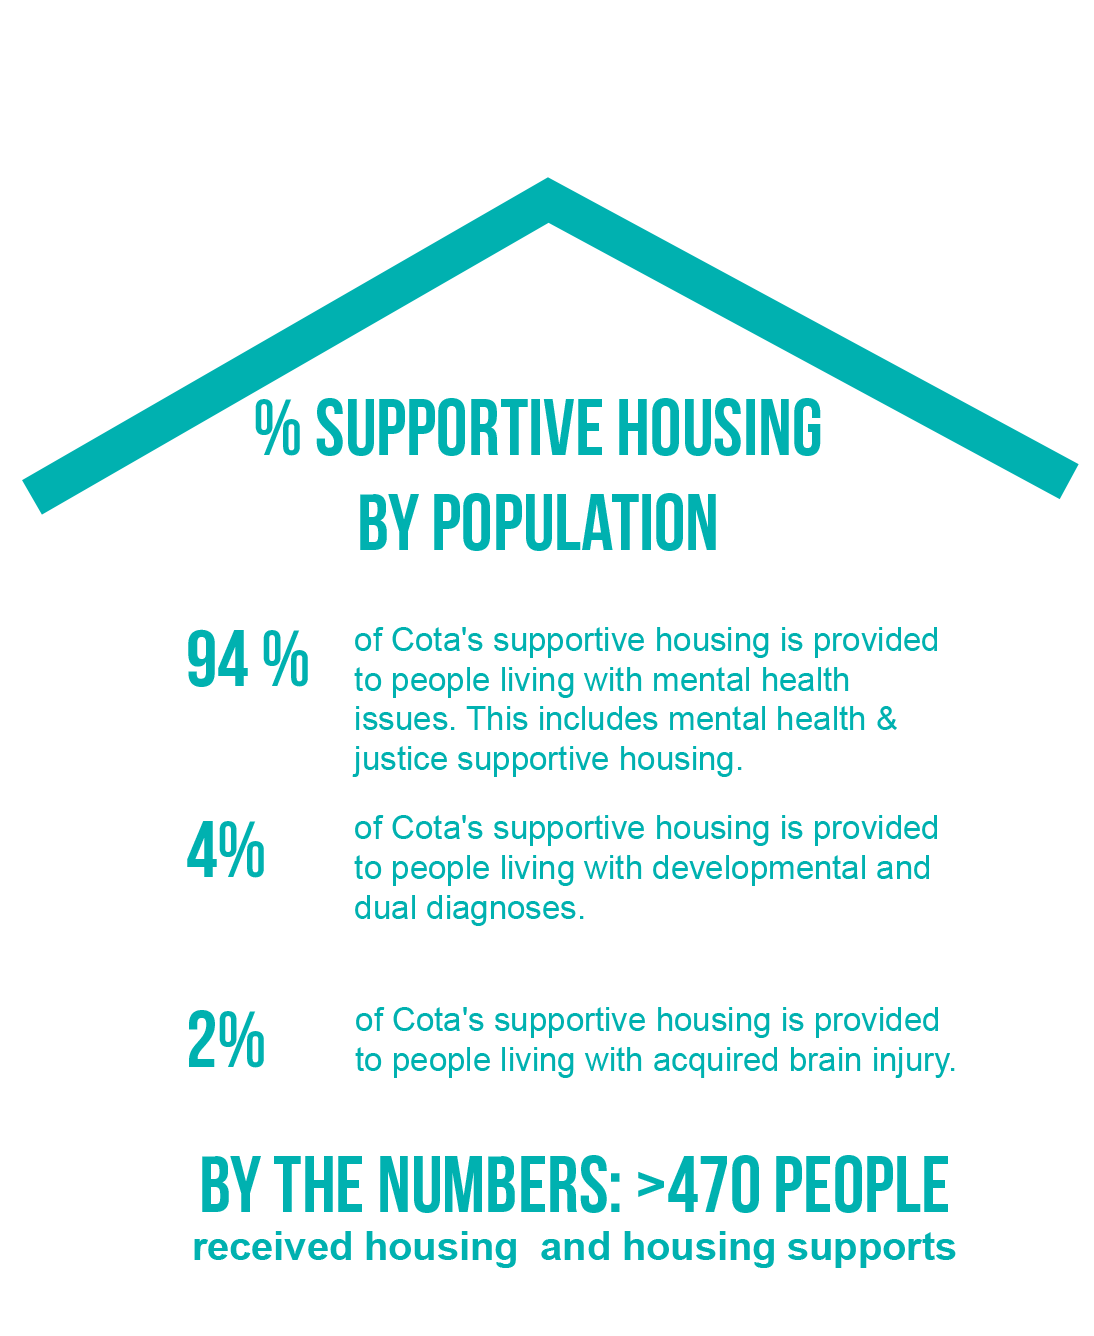 Stats on supportive housing